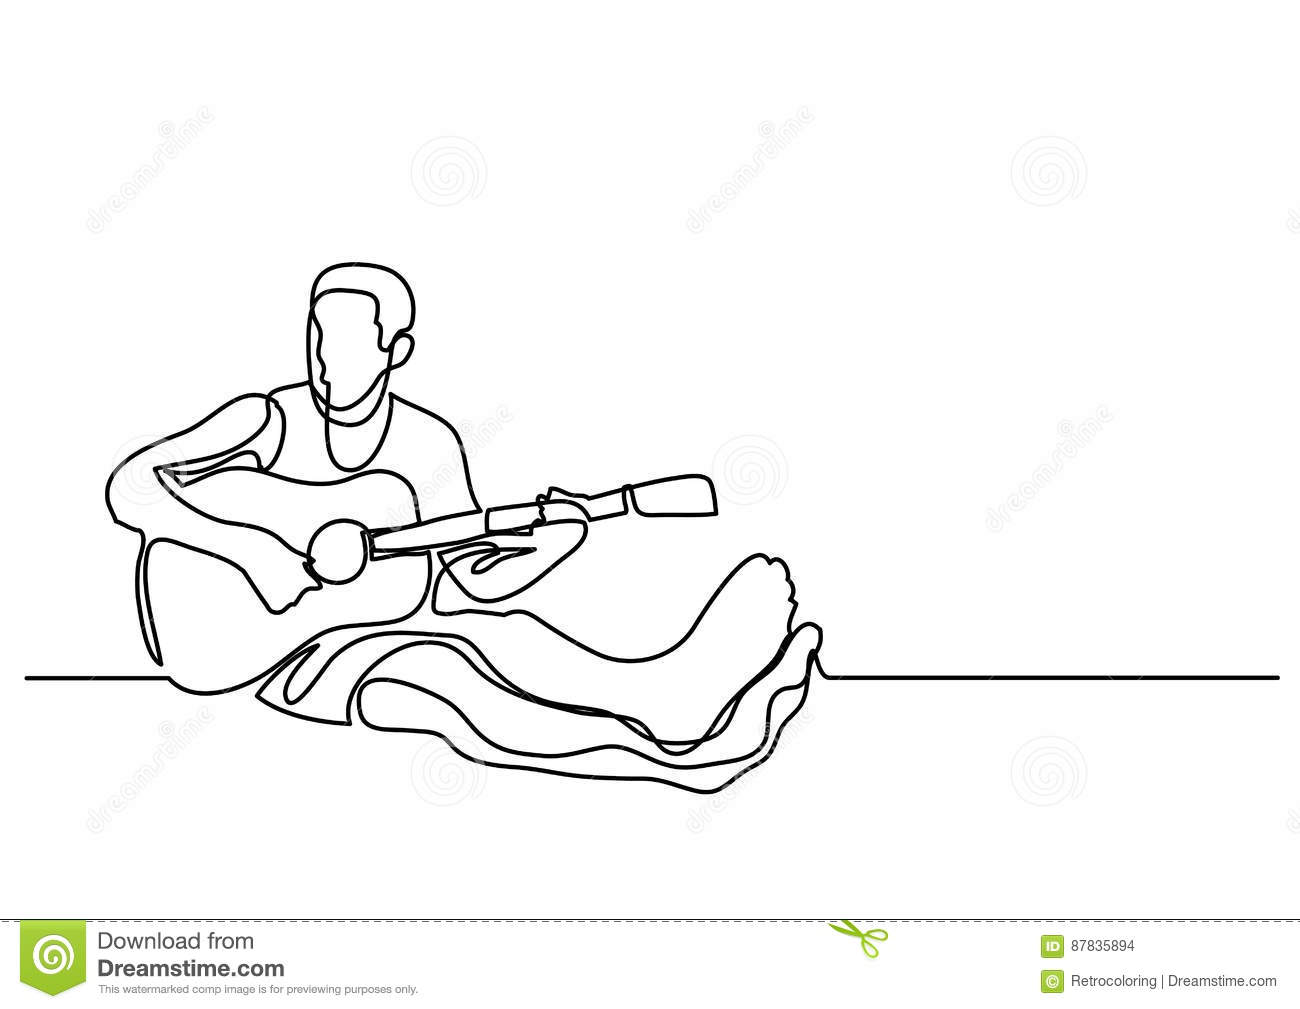 Contour Line Drawing Guitar : Continuous line drawing of man sitting playing guitar